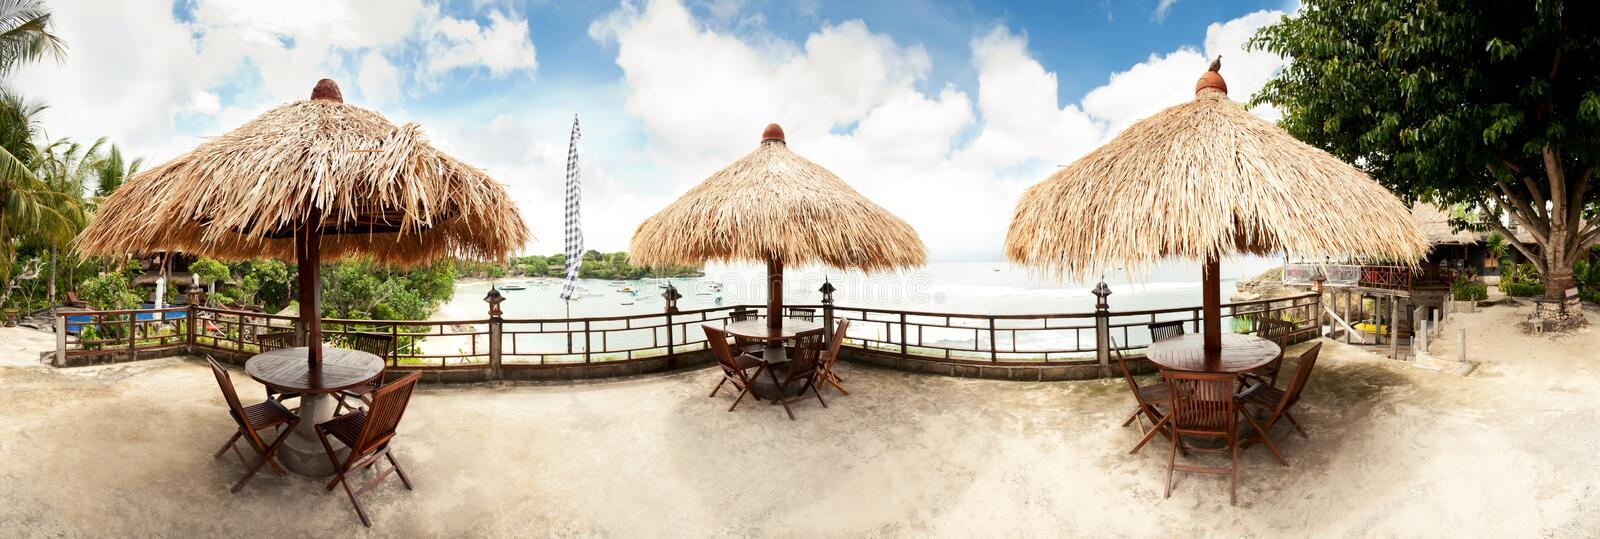 Download Tropical beach panorama stock image. Image of landscape - 30269897